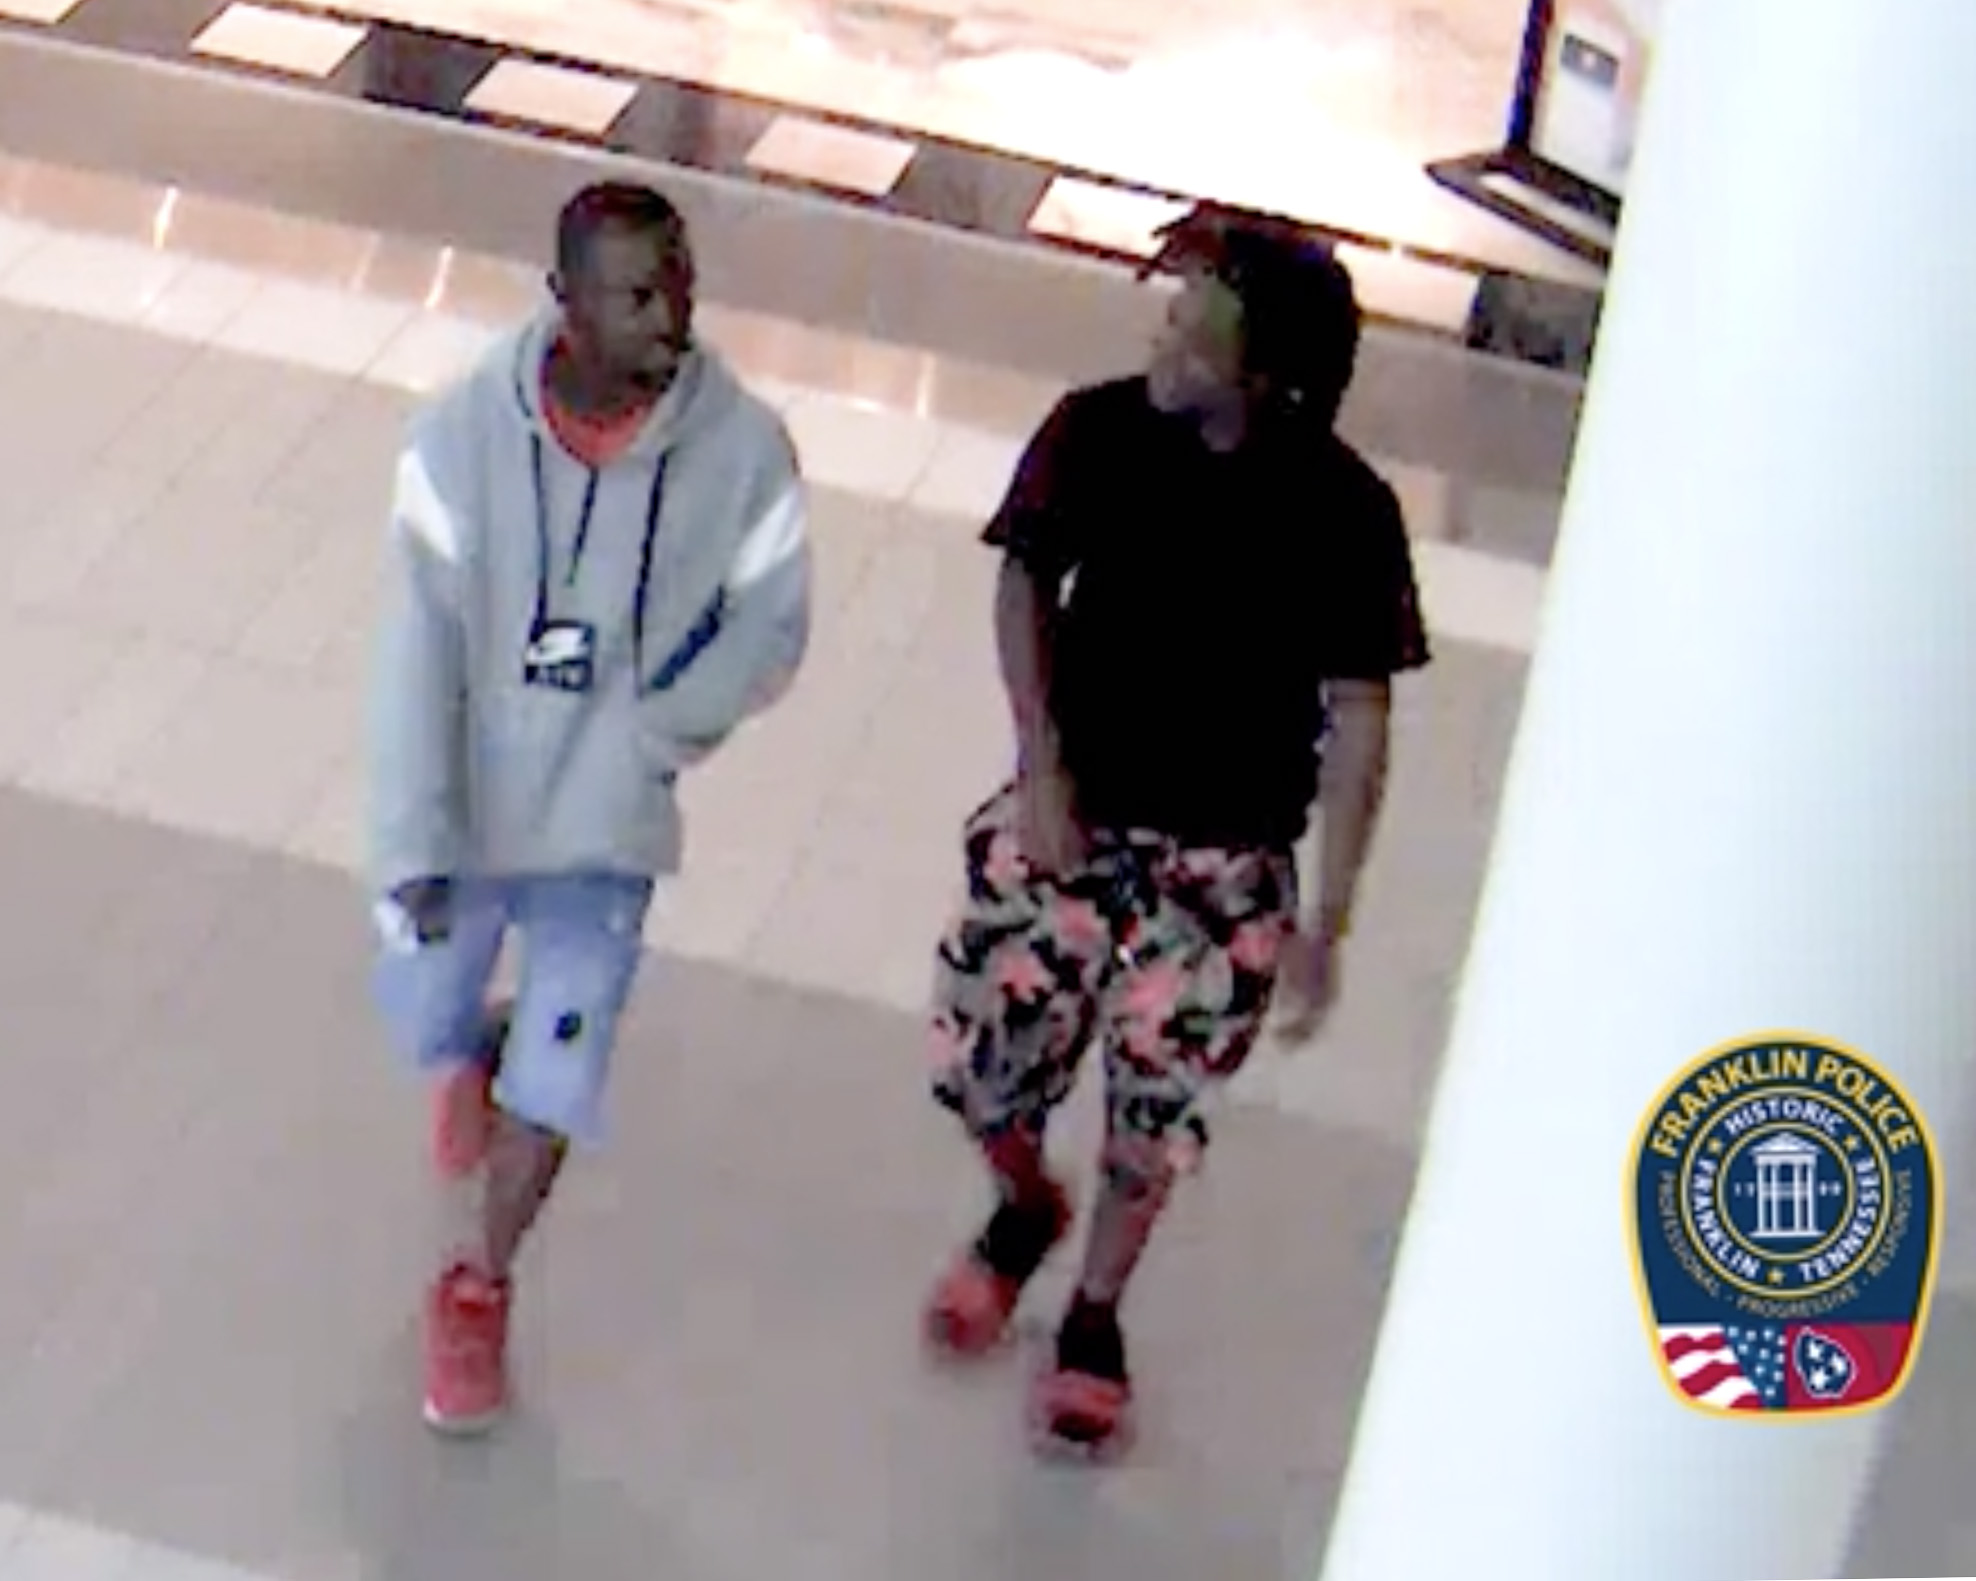 Duo wanted for passing counterfeit twenties, Franklin detectives offer $1,000 reward